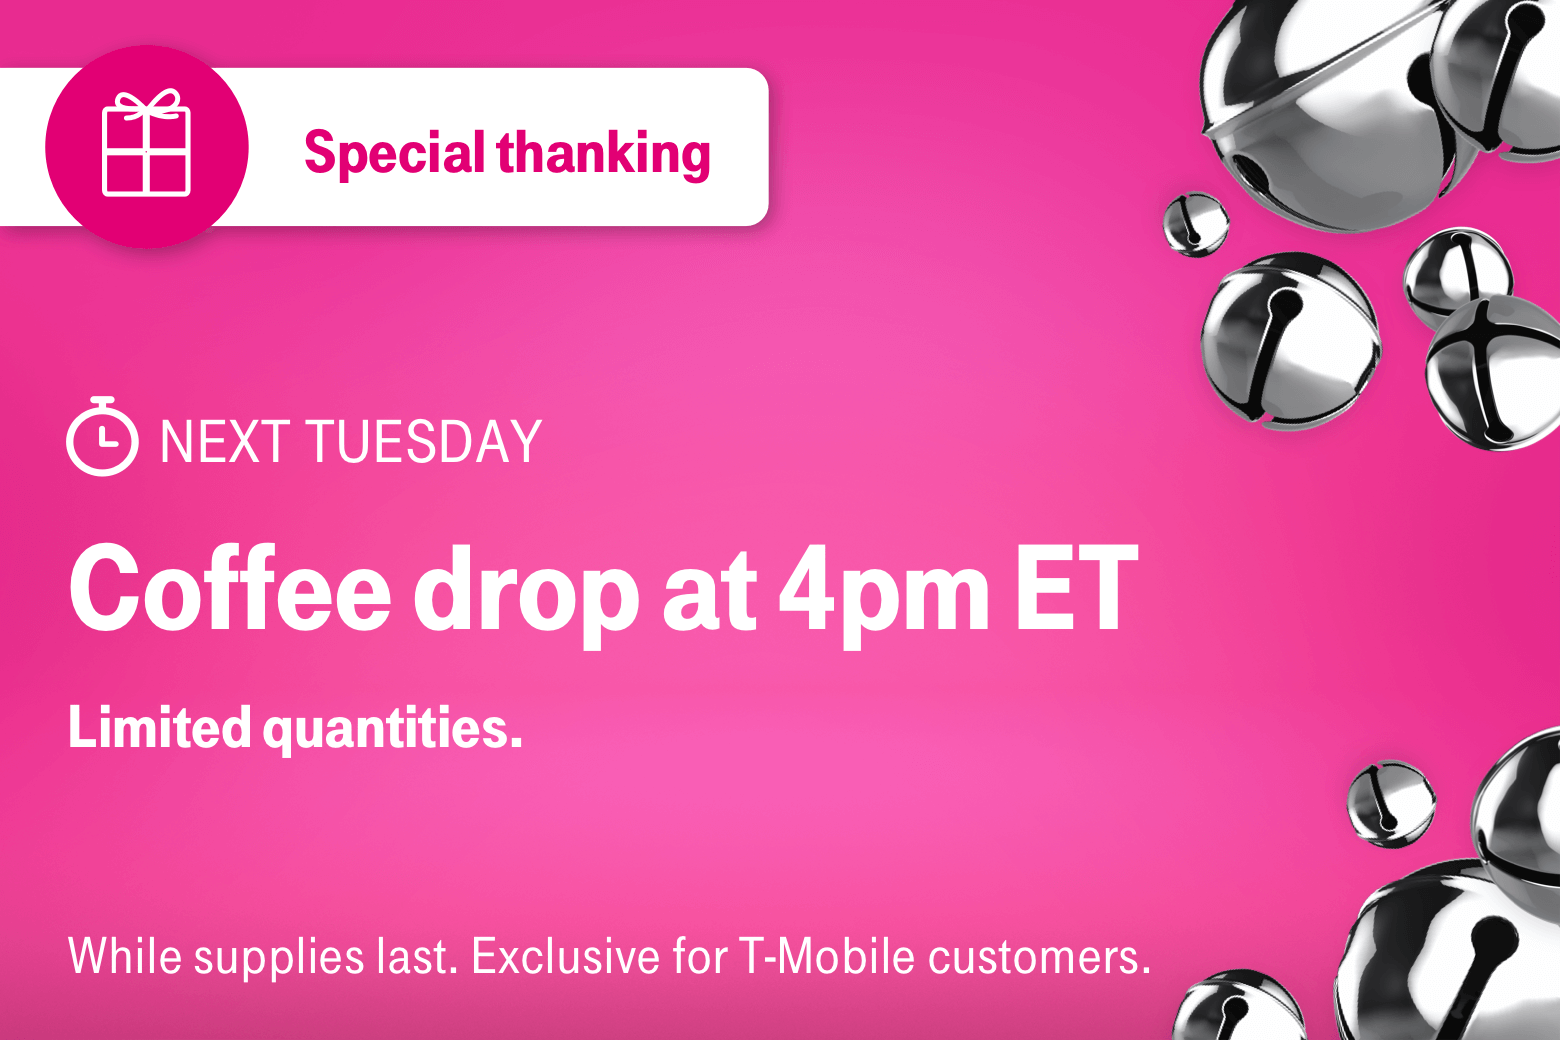 Special thanking. Next Tuesday. Coffee drop at 4pm ET. Limited quantities. While supplies last. Exclusive for T-Mobile customers.